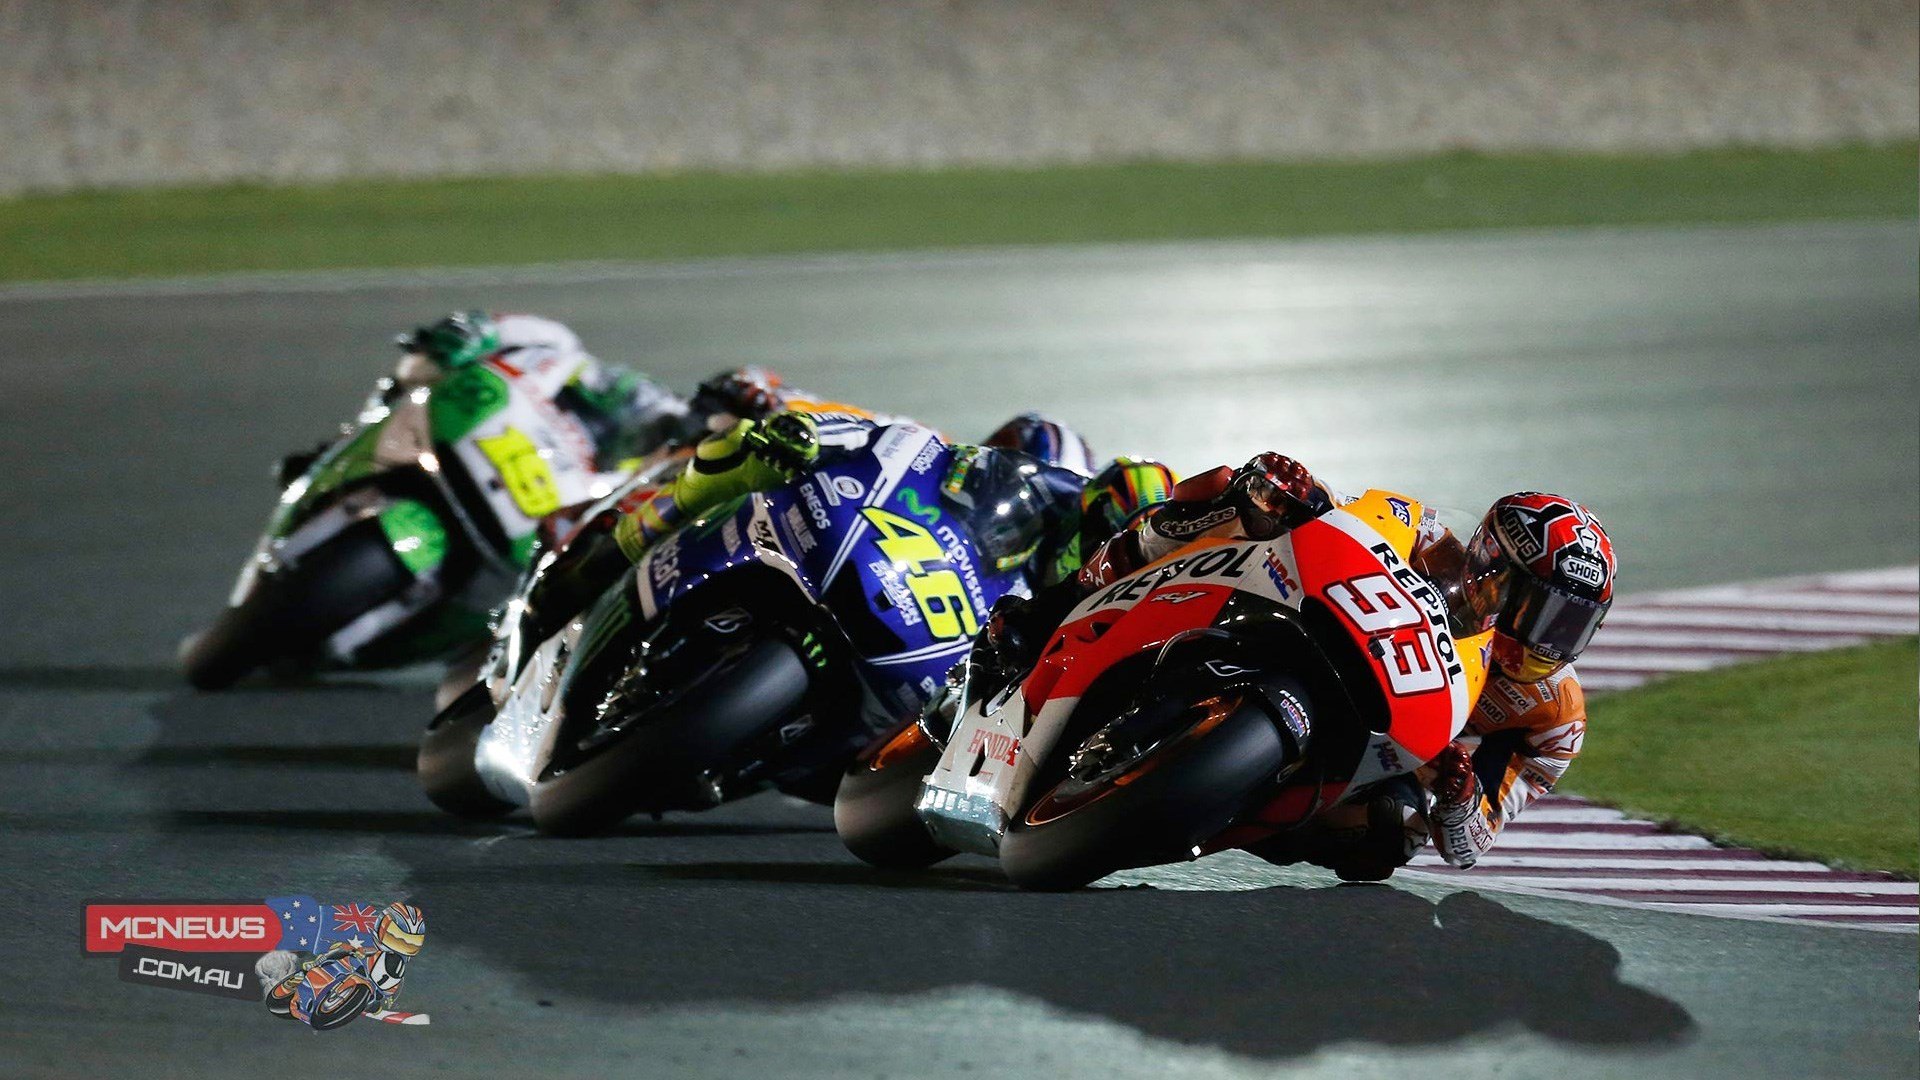 Moto Gp Wallpaper (58+ images)